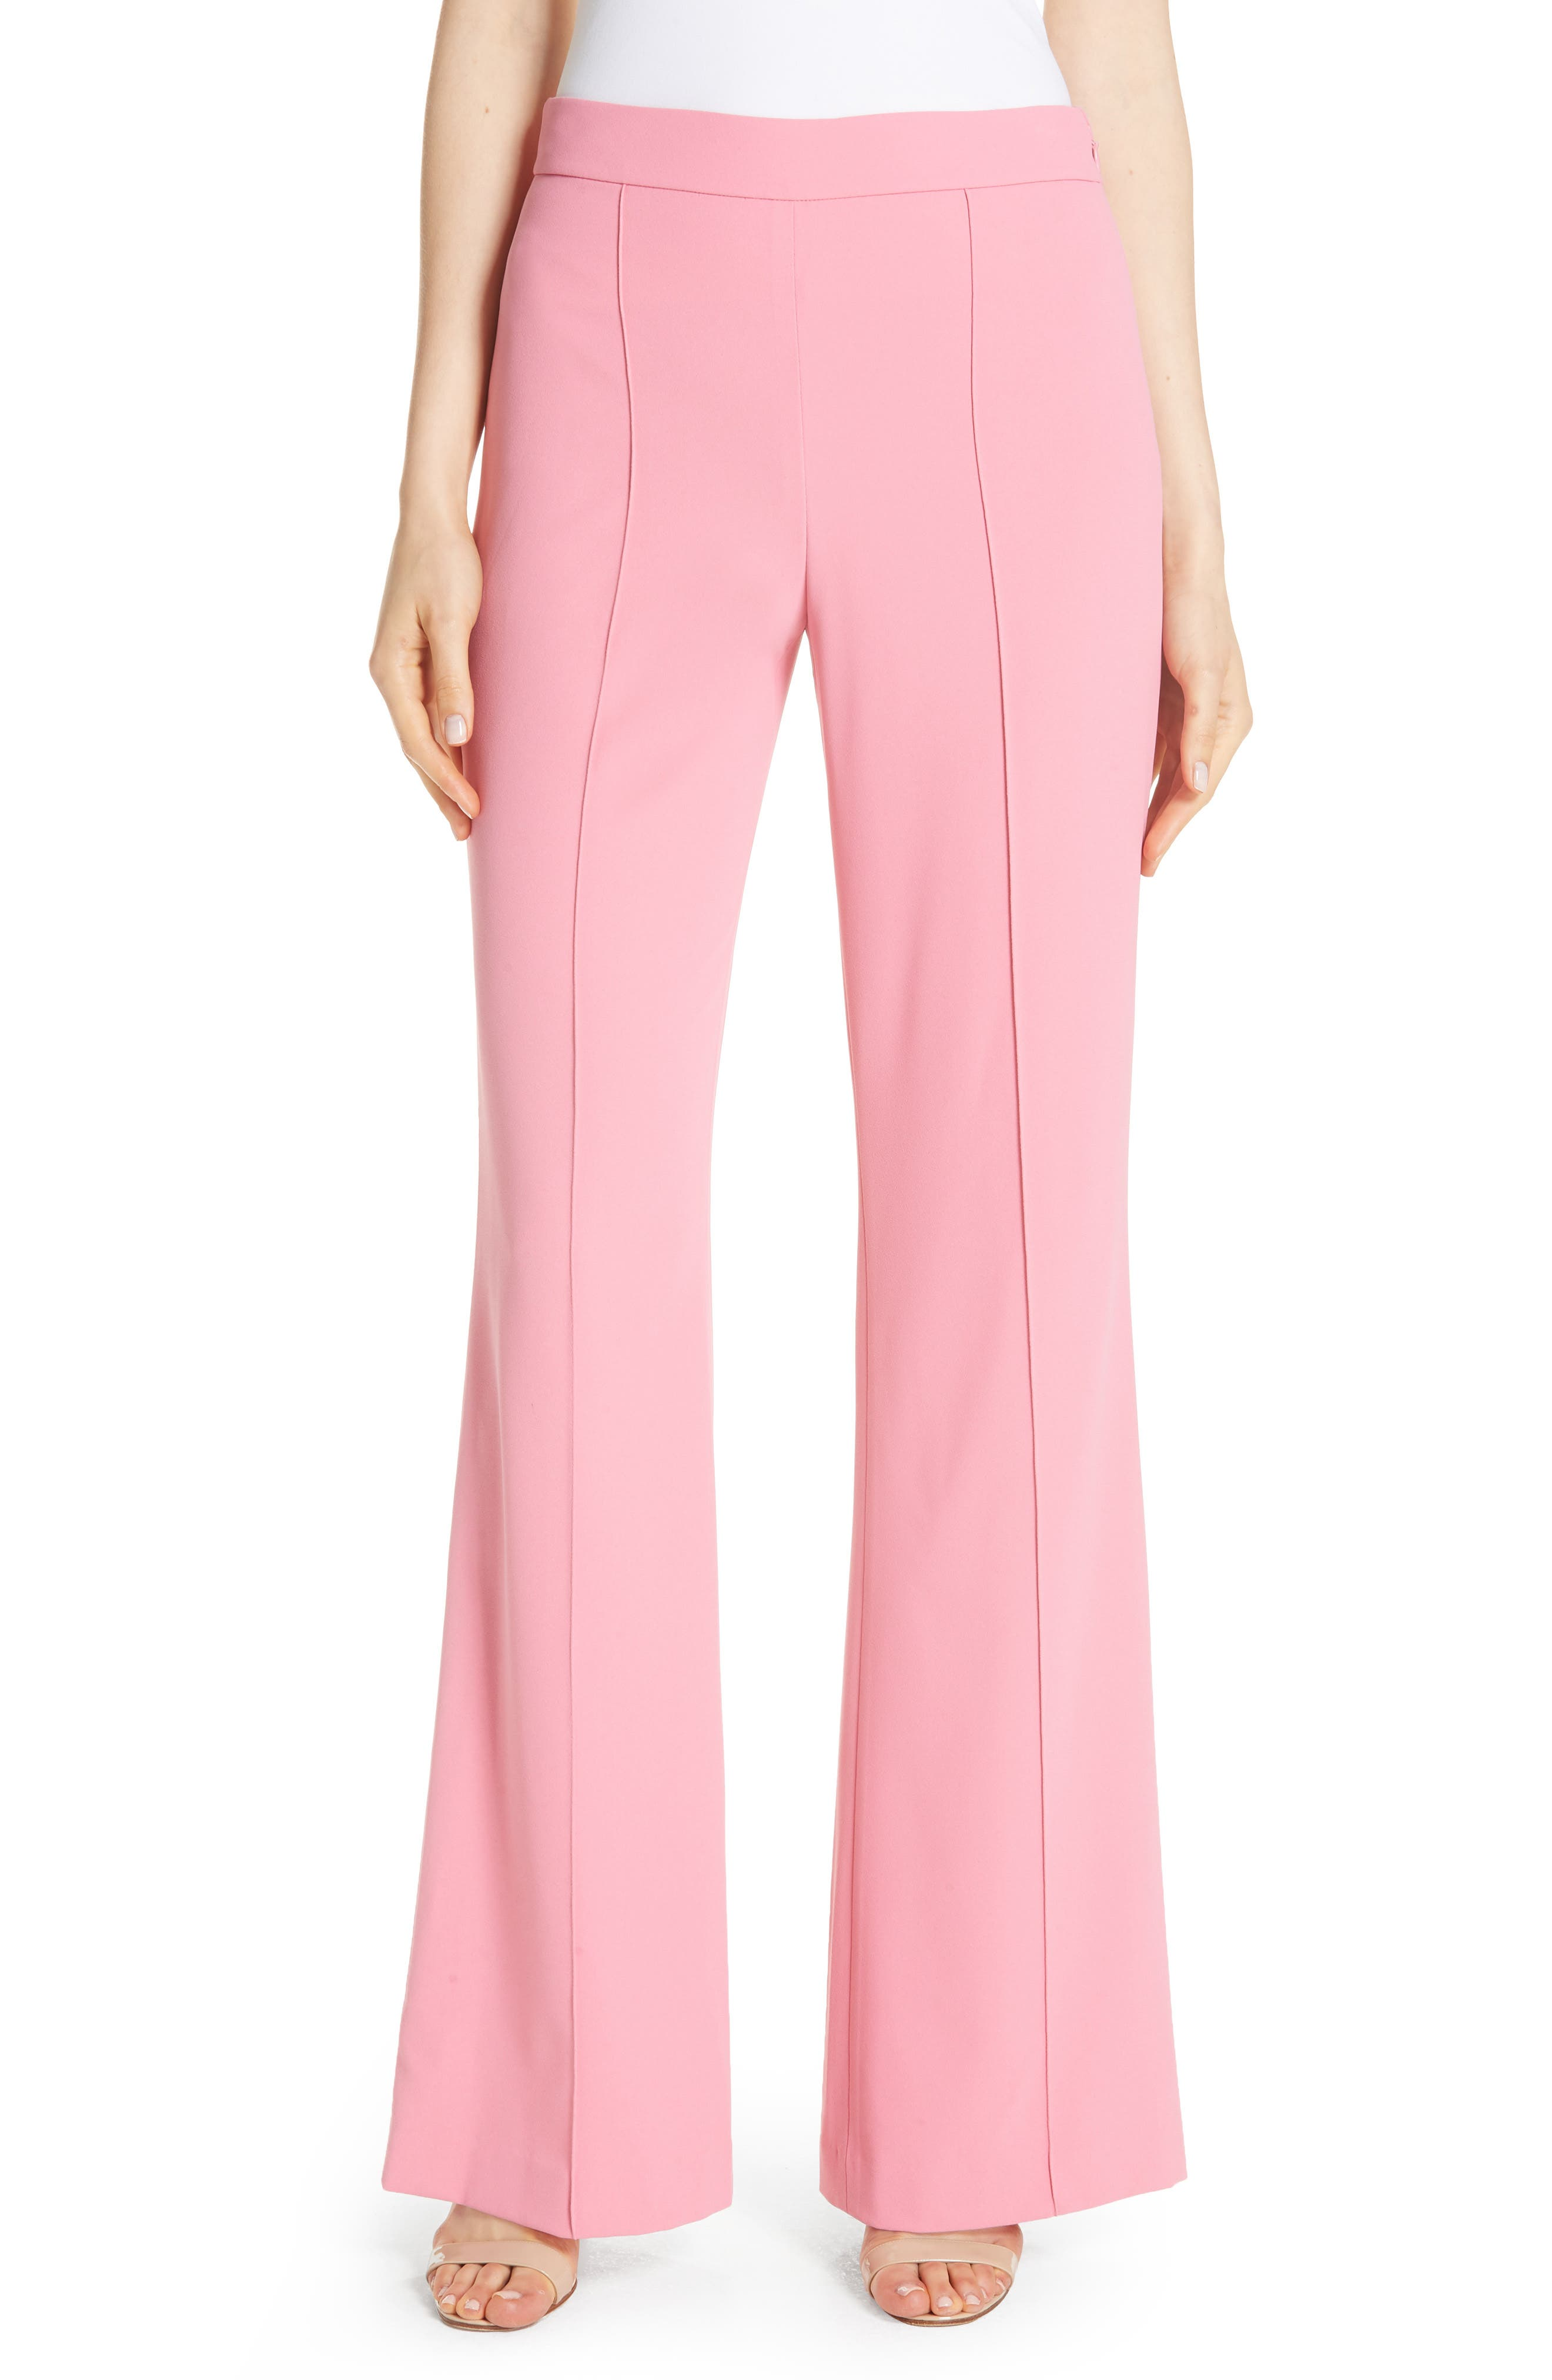 Jalisa High Waist Flare Pants,                         Main,                         color, 650